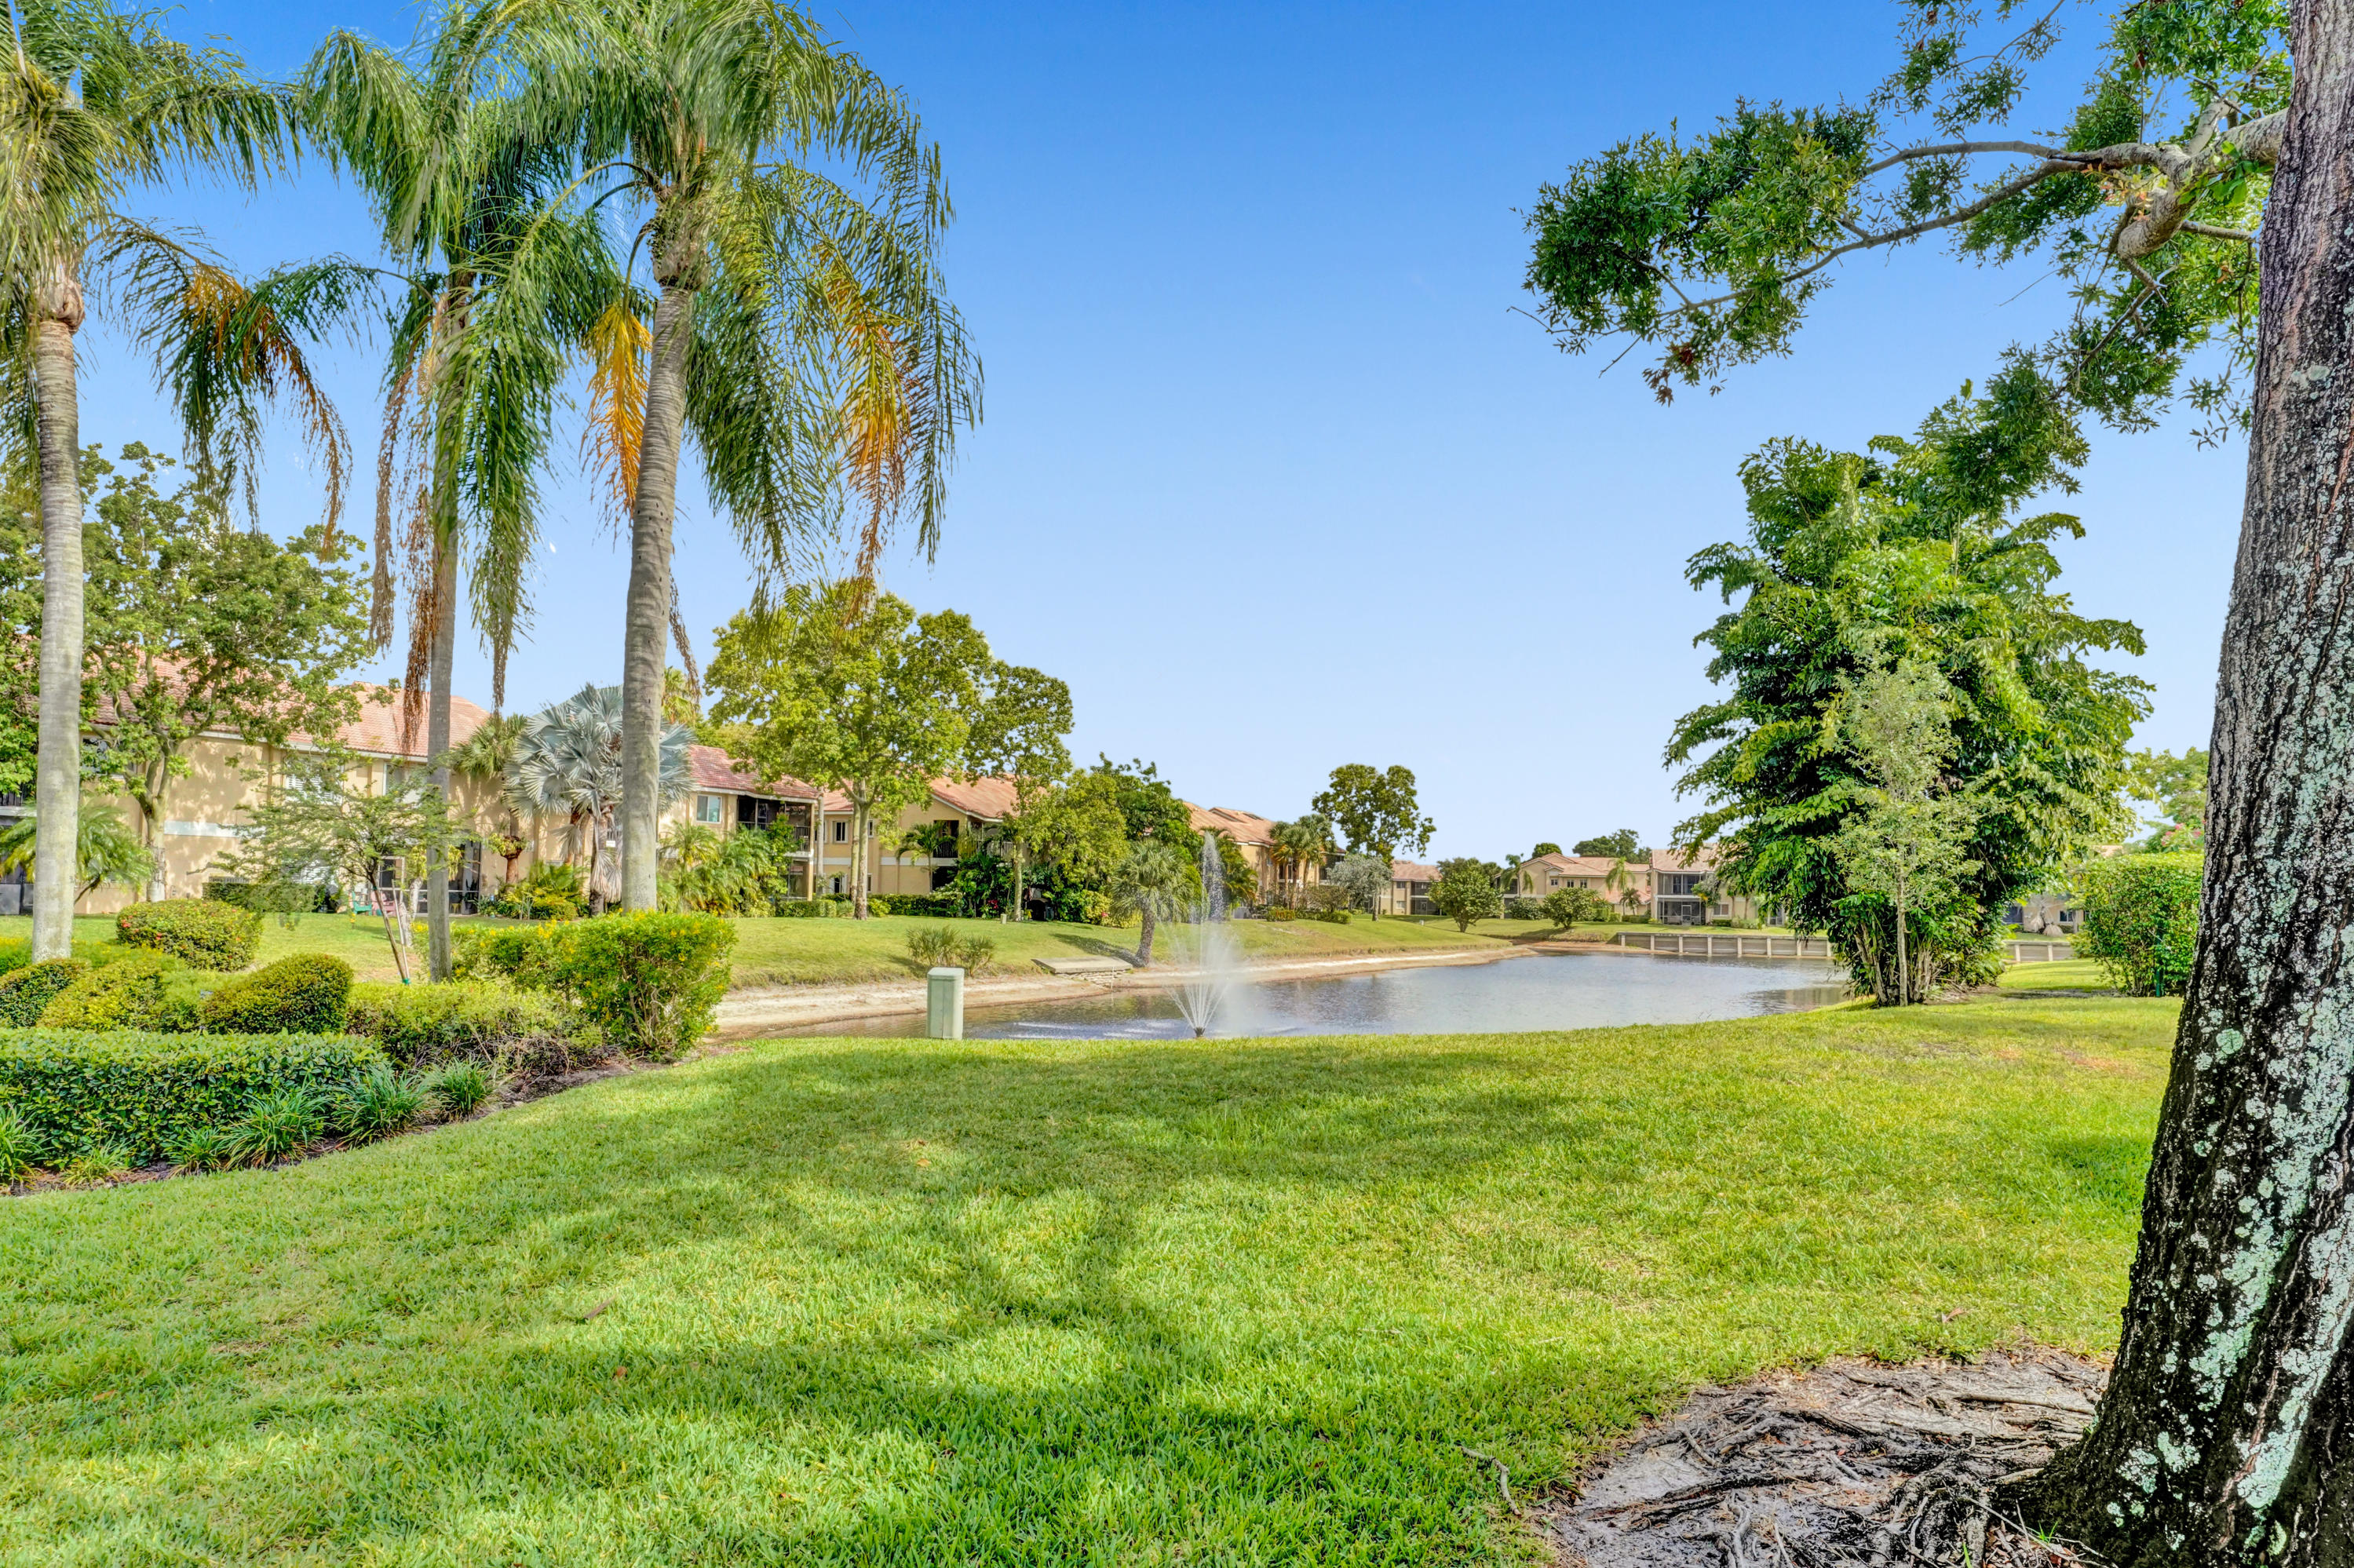 23032 Island View - 3/2 in ISLES OF BOCA CONDOS ONE AND TWO DECLS FILED IN OR4